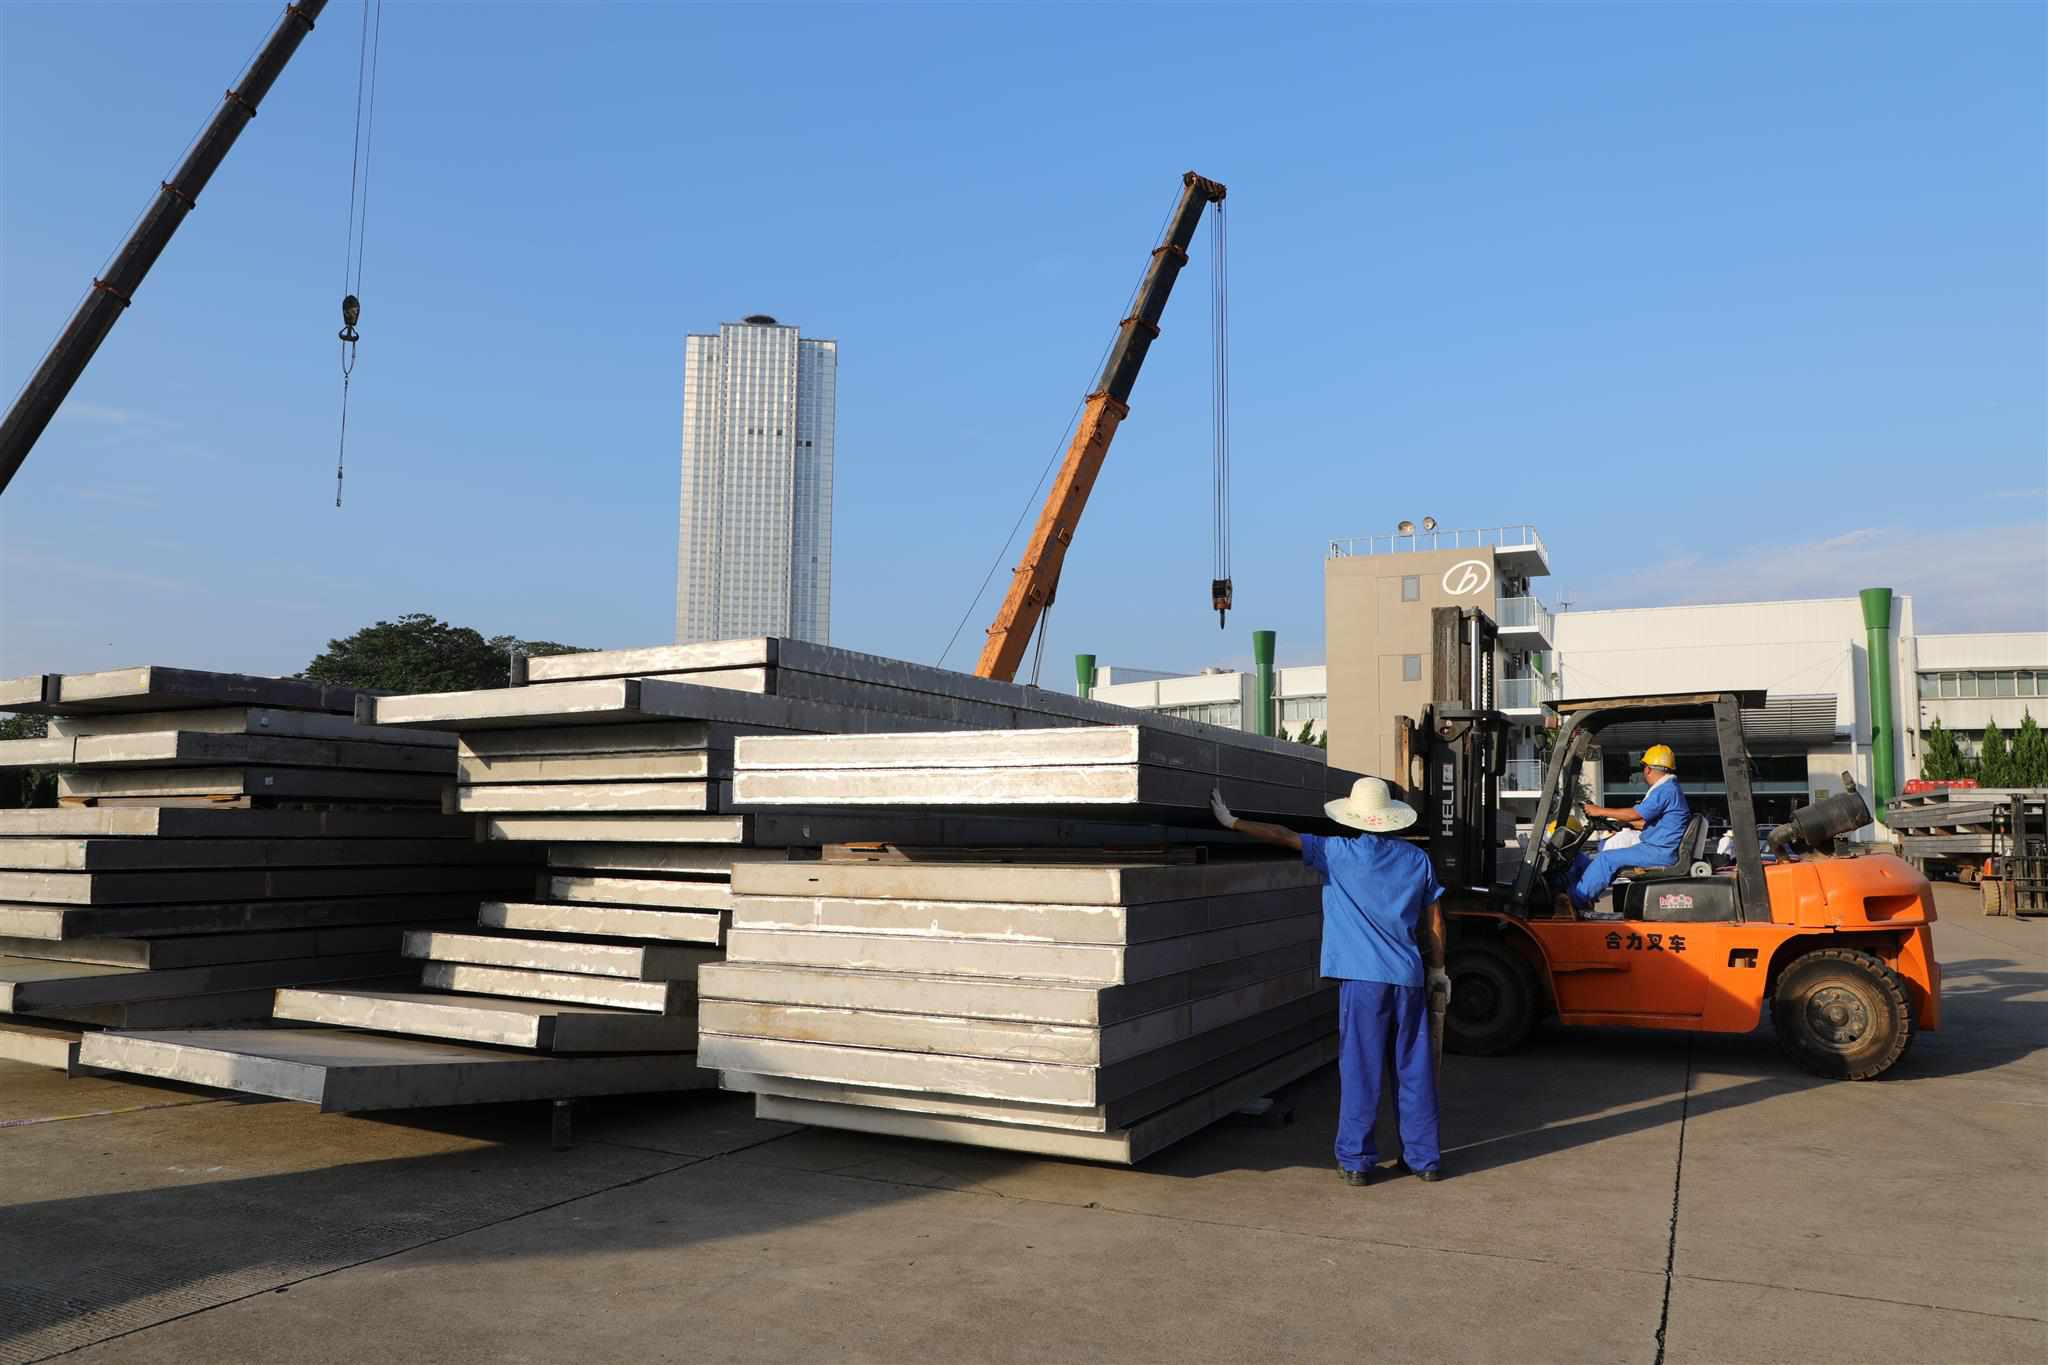 Slabs waiting for assembly